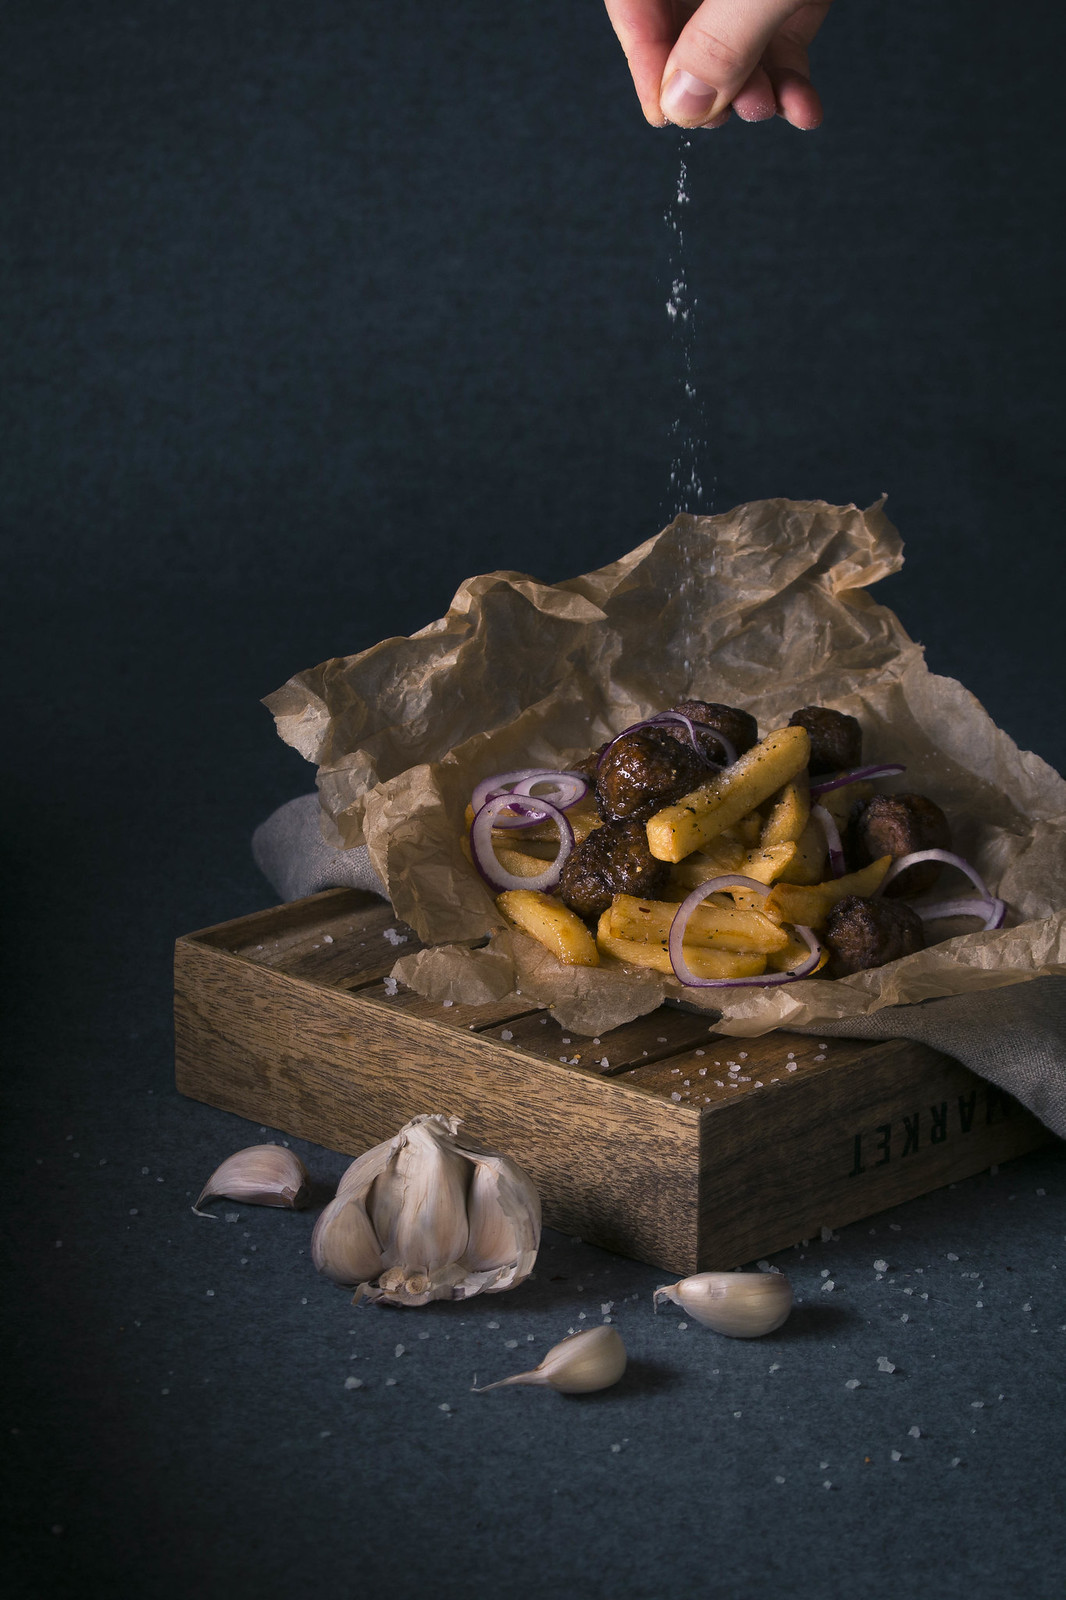 French fries & stuff / Food photography